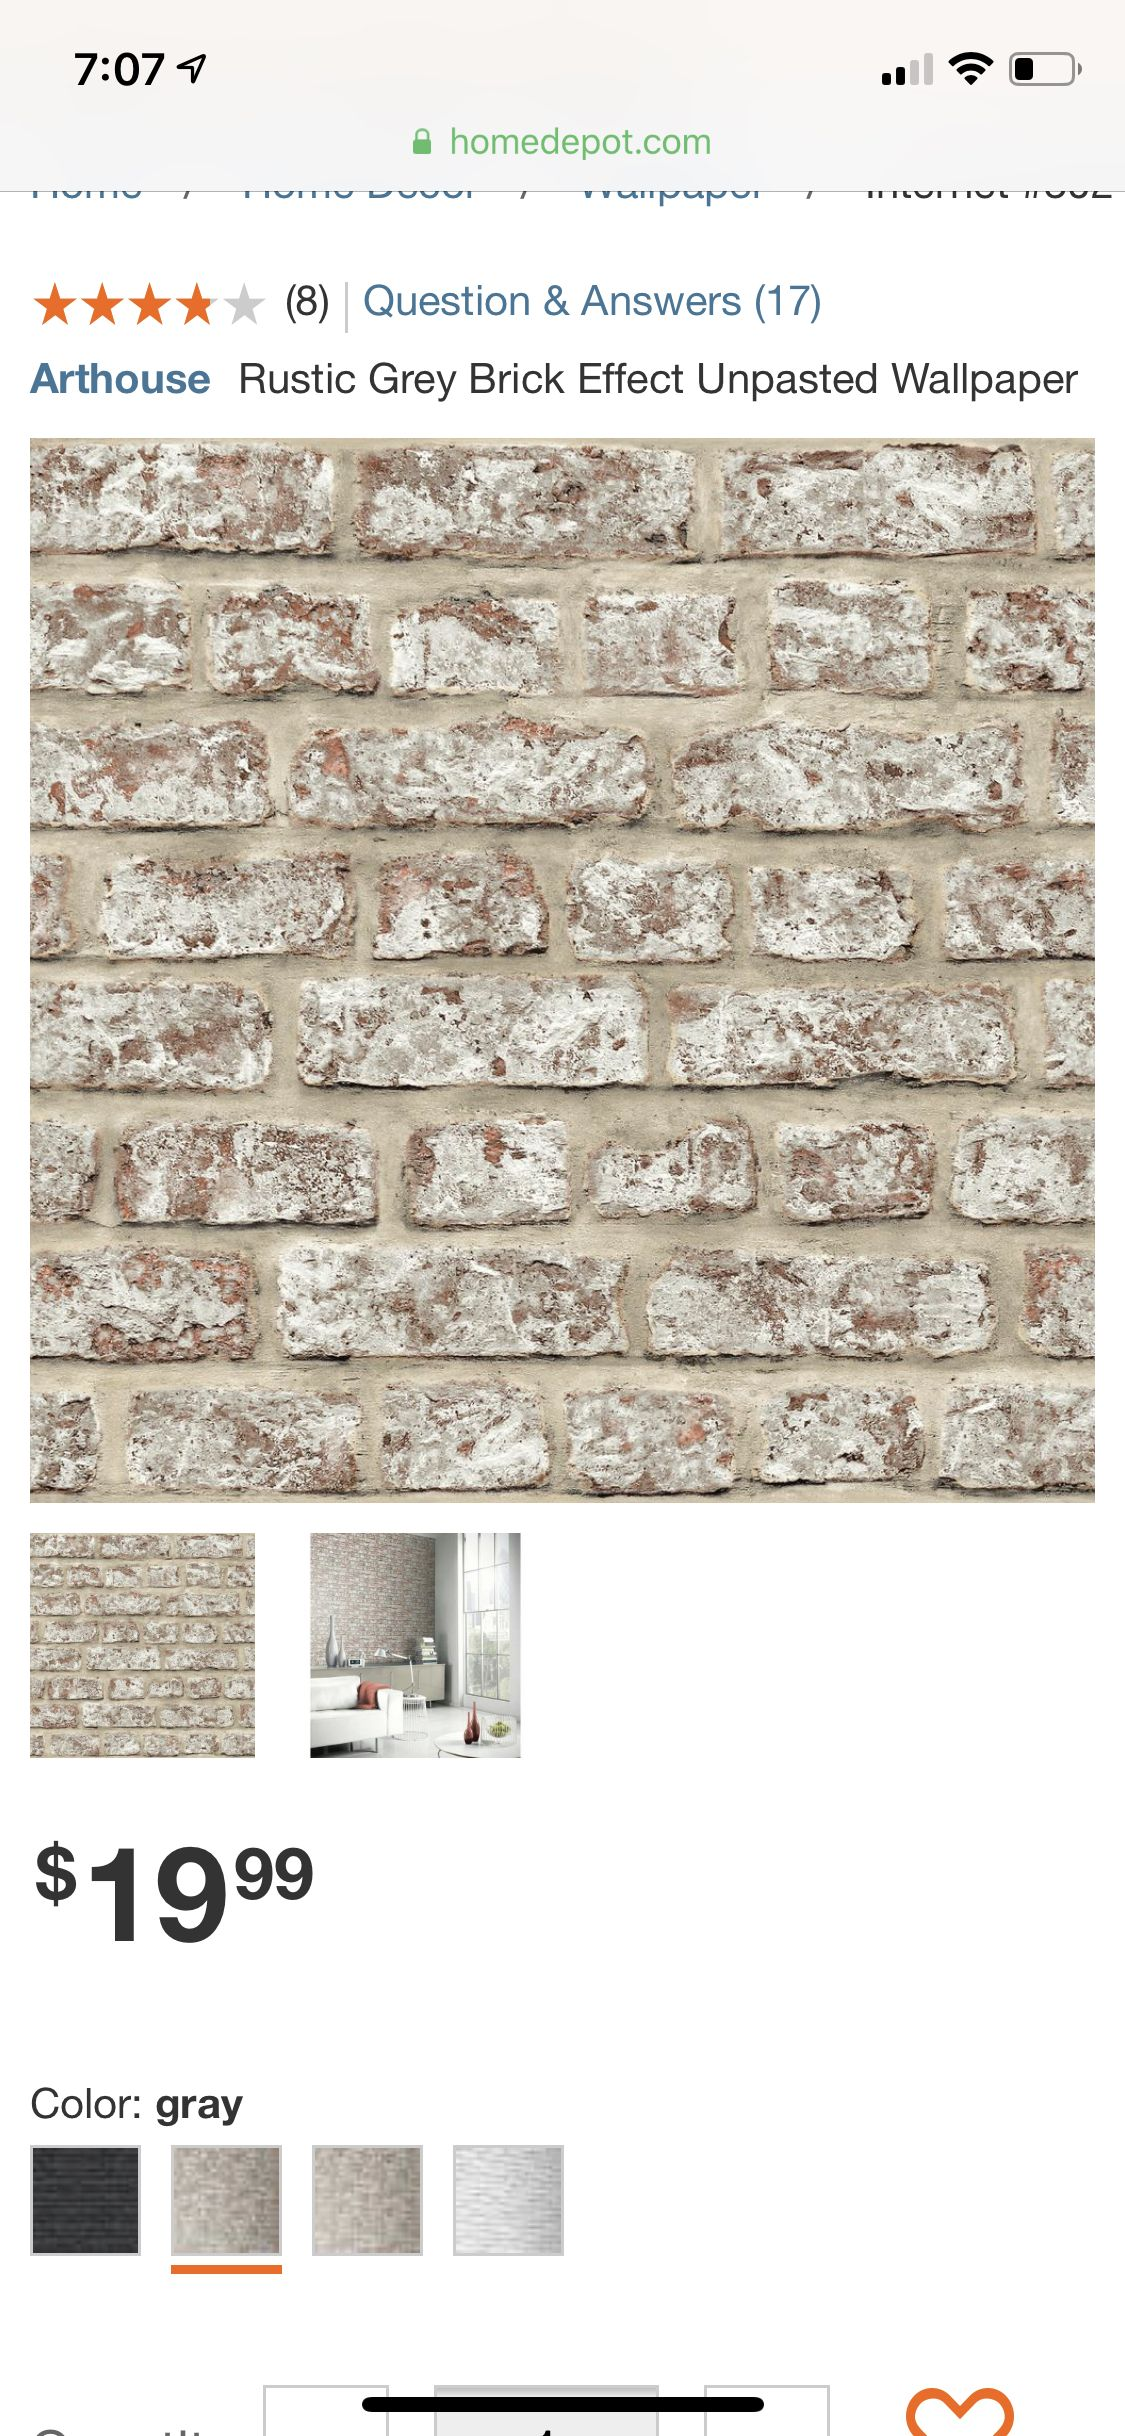 Arthouse Rustic Grey Brick Effect Unpasted Wallpaper, Gray